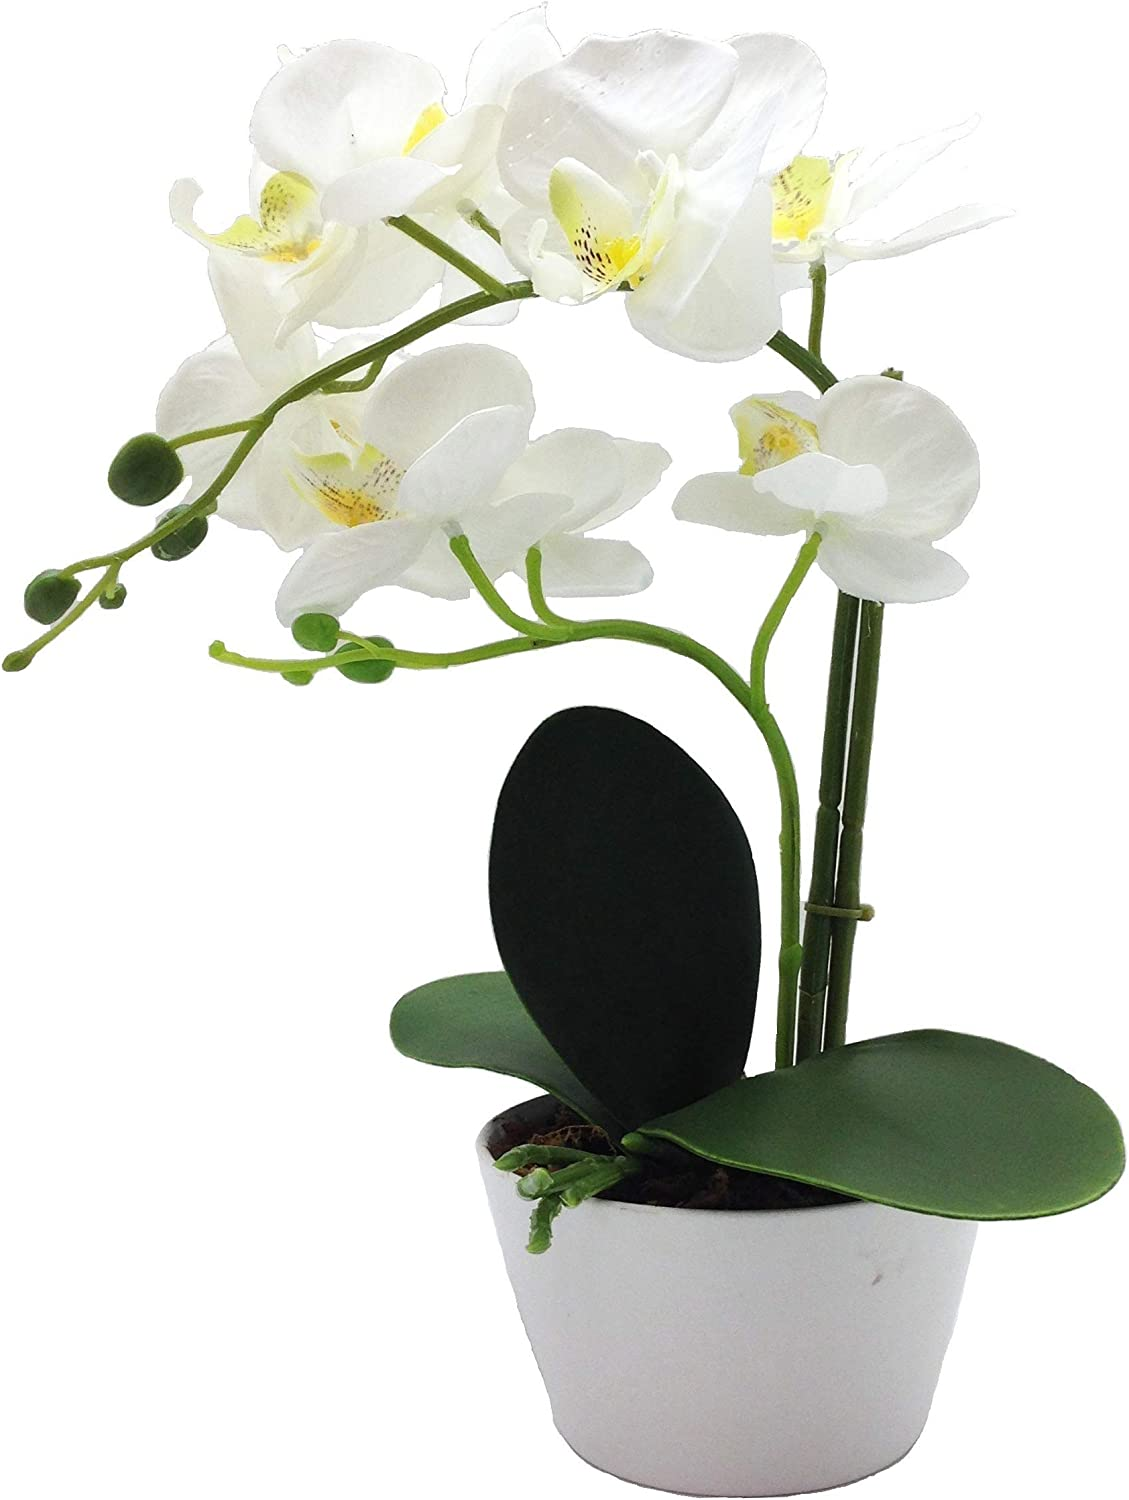 "PEPPERLONELY Brand 13"" H Artificial Ceramic Potted Plant Orchid, White"